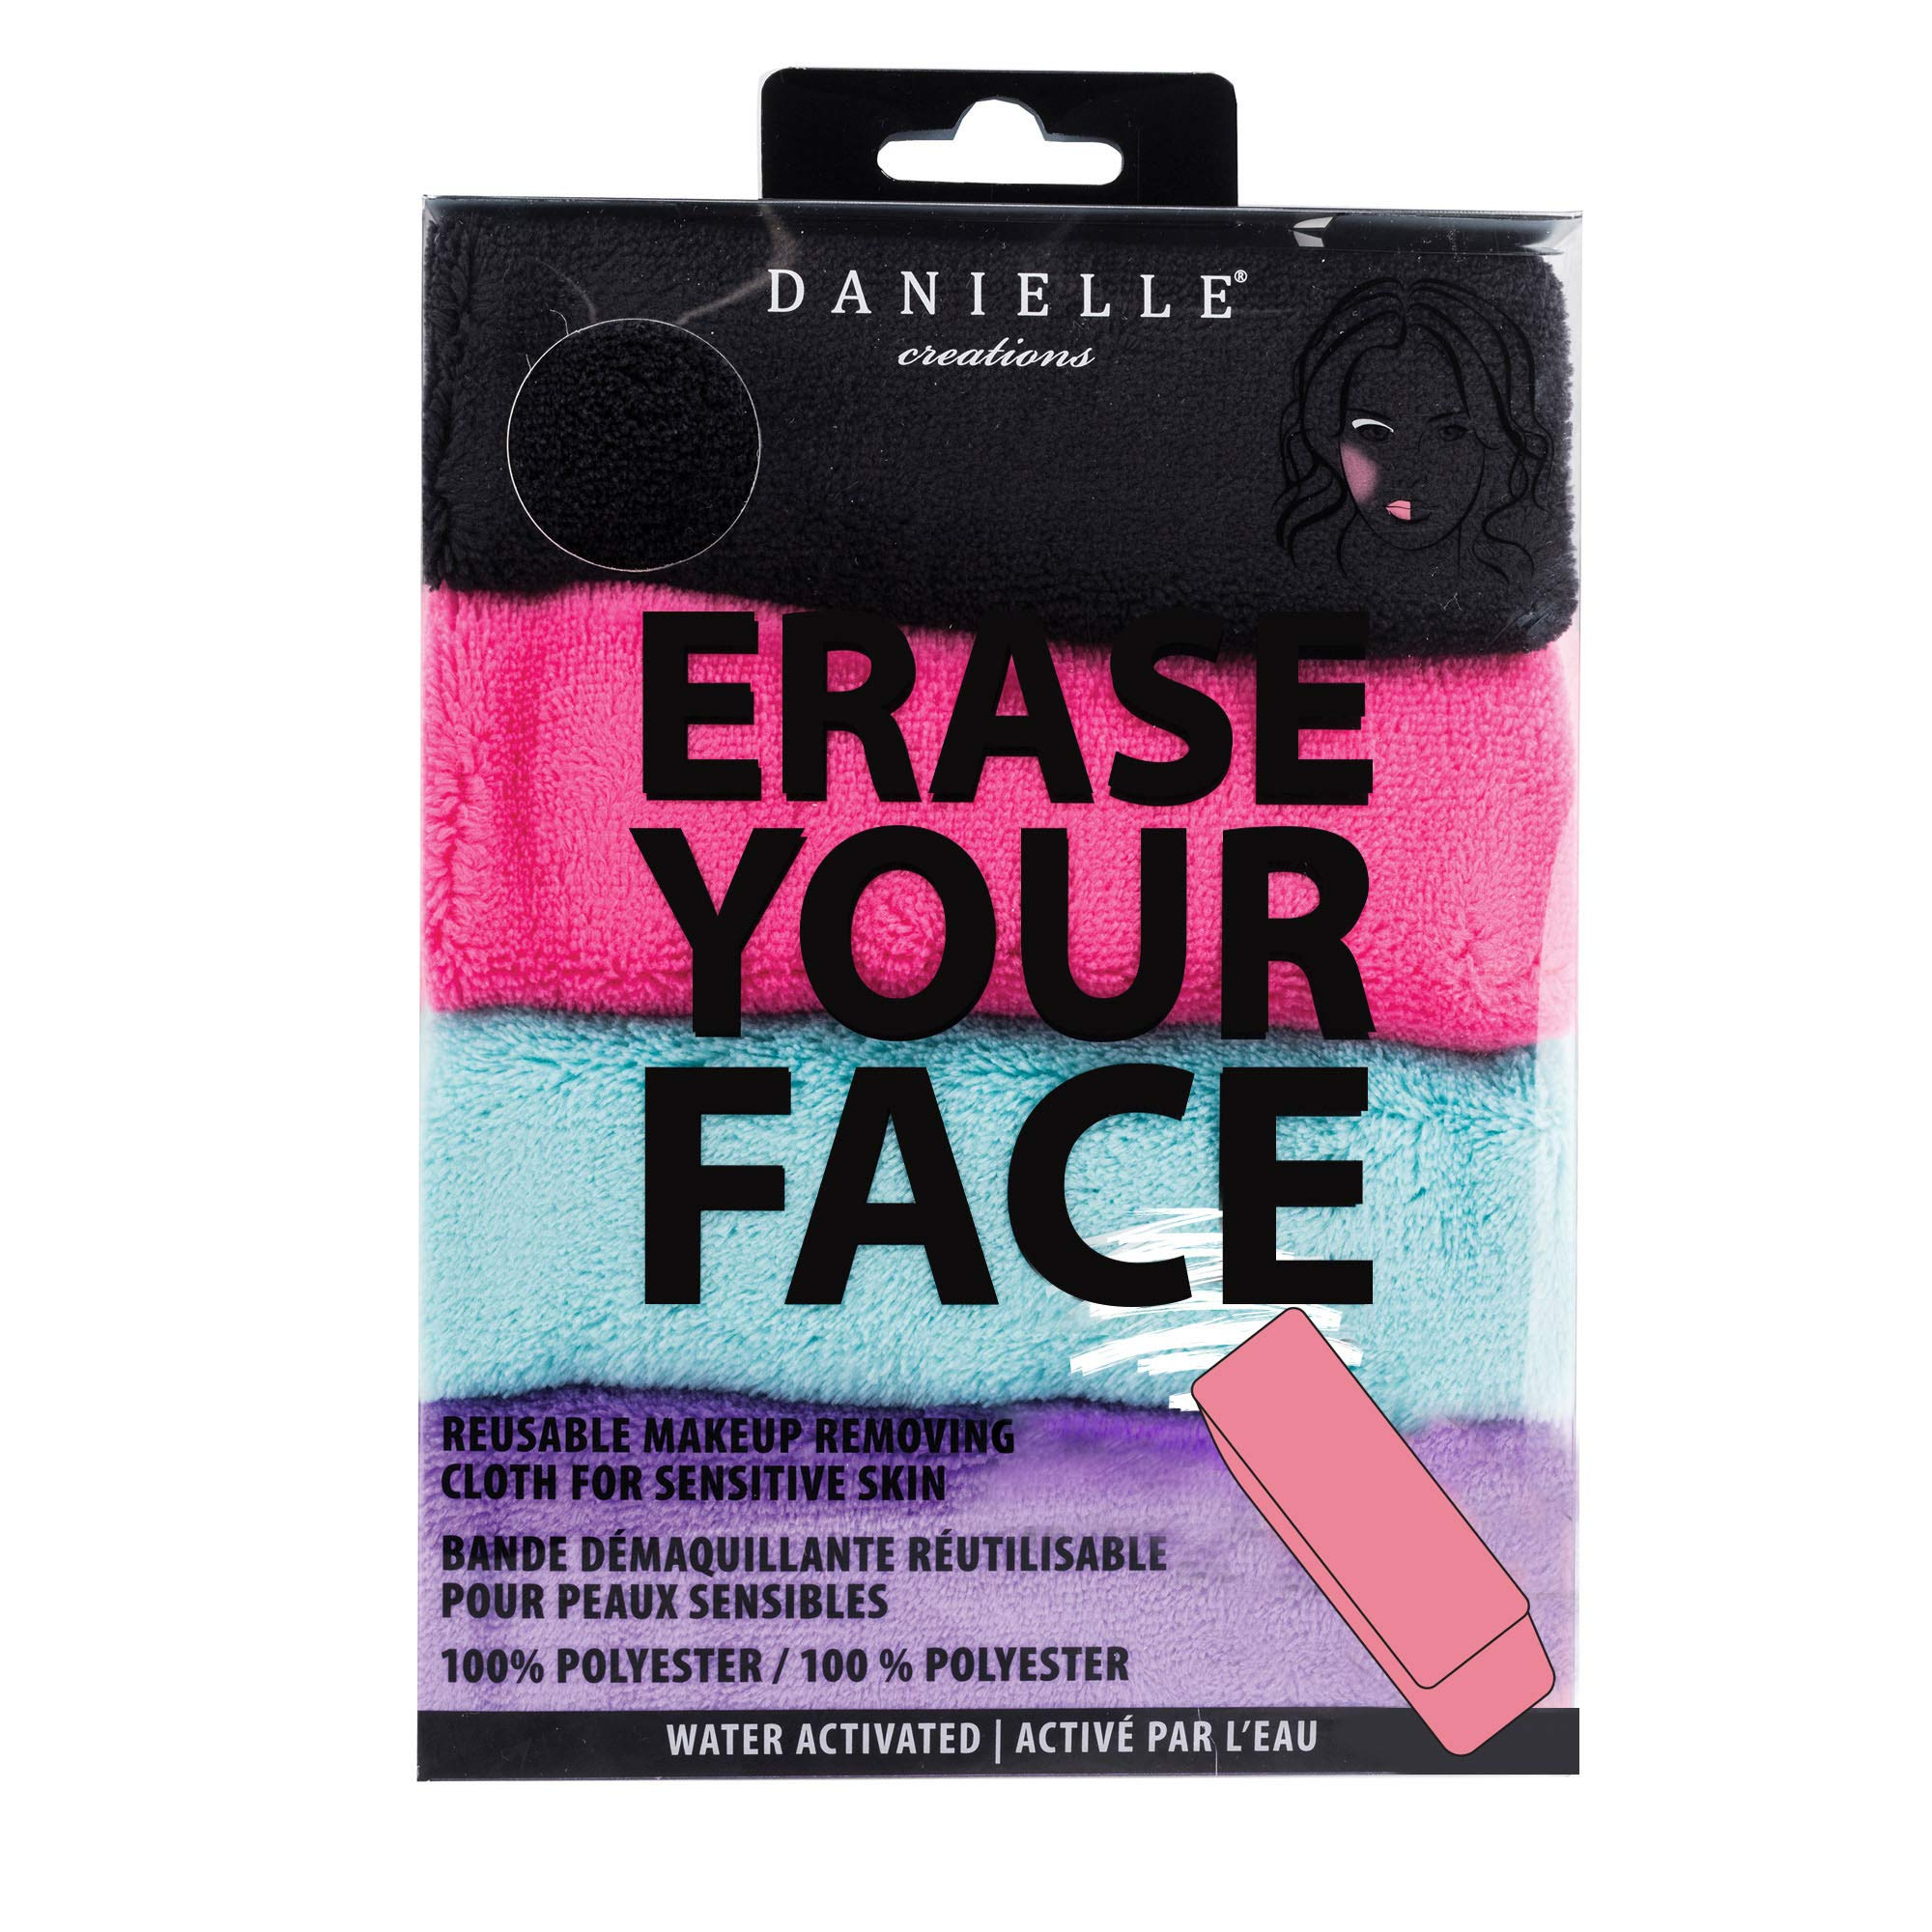 Make-up Removing Cloths 4 Count, Erase Your Face By Danielle Enterprises Enterprises Enterprises by Danielle